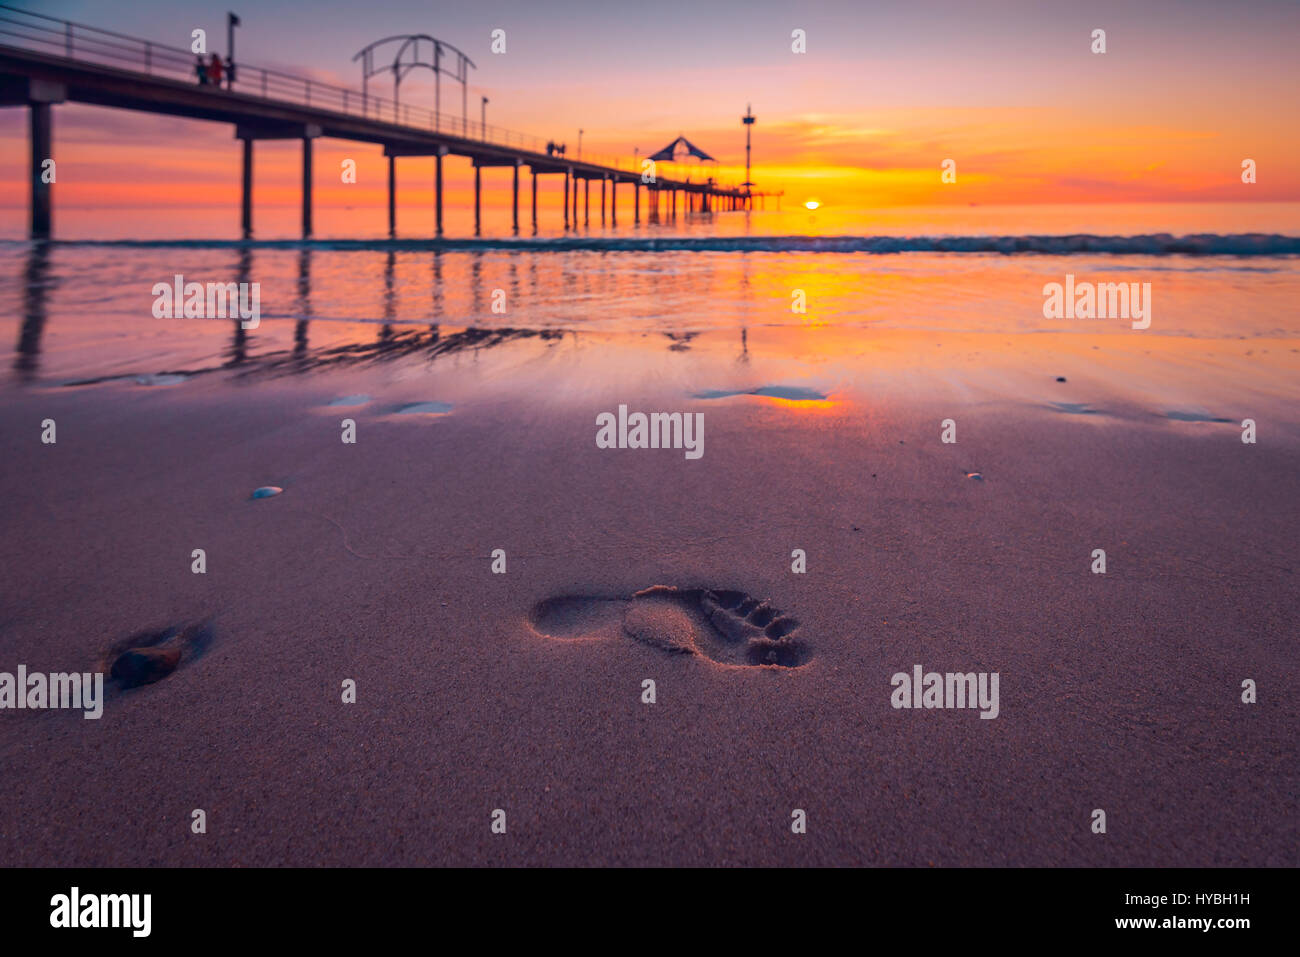 Human footprints in wet sand at sunset, South Australia - Stock Image